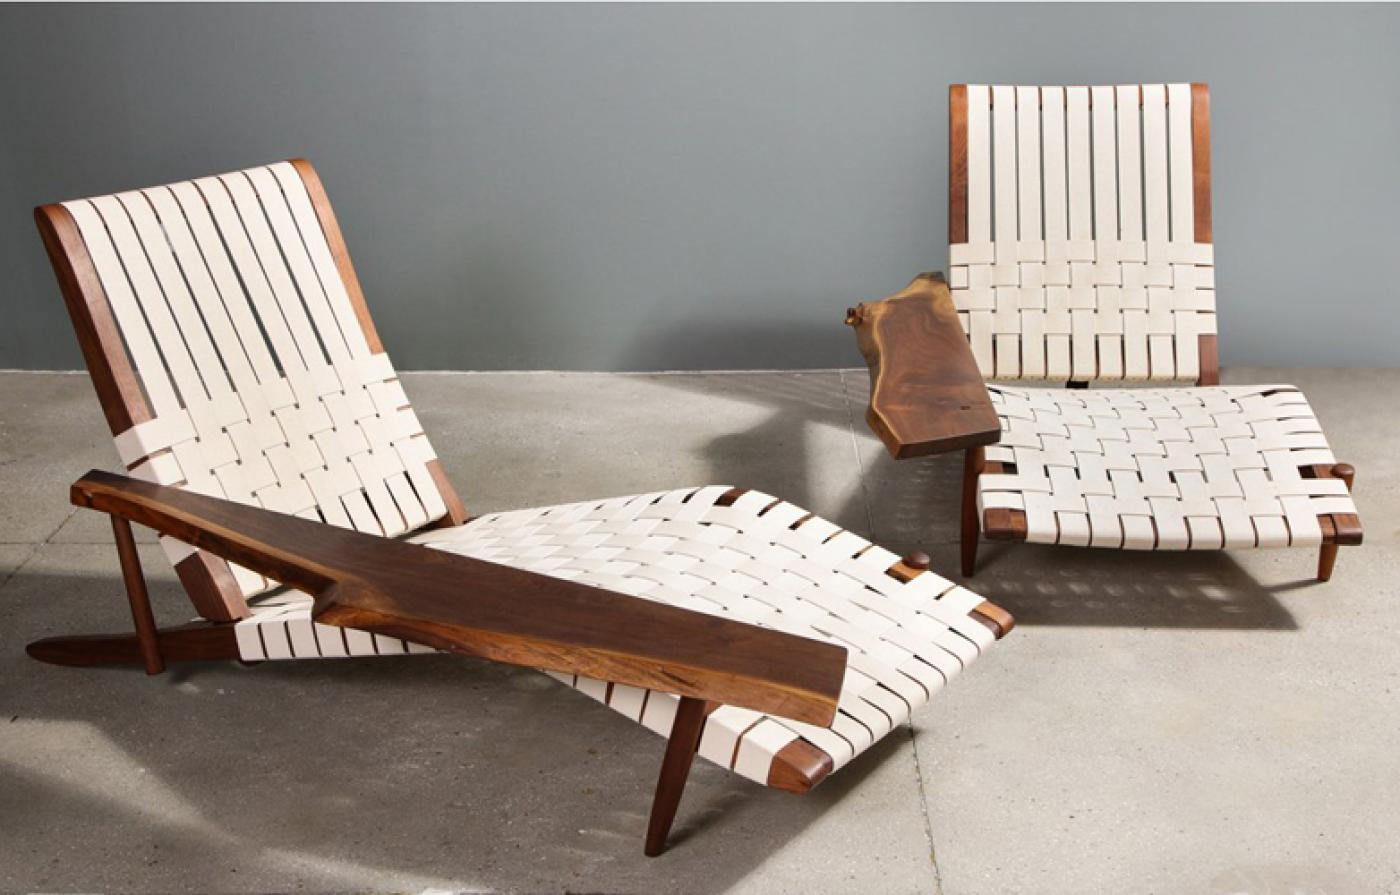 A Family's Nakashima Collection Surfaces: Guy Regal to Conduct Sale